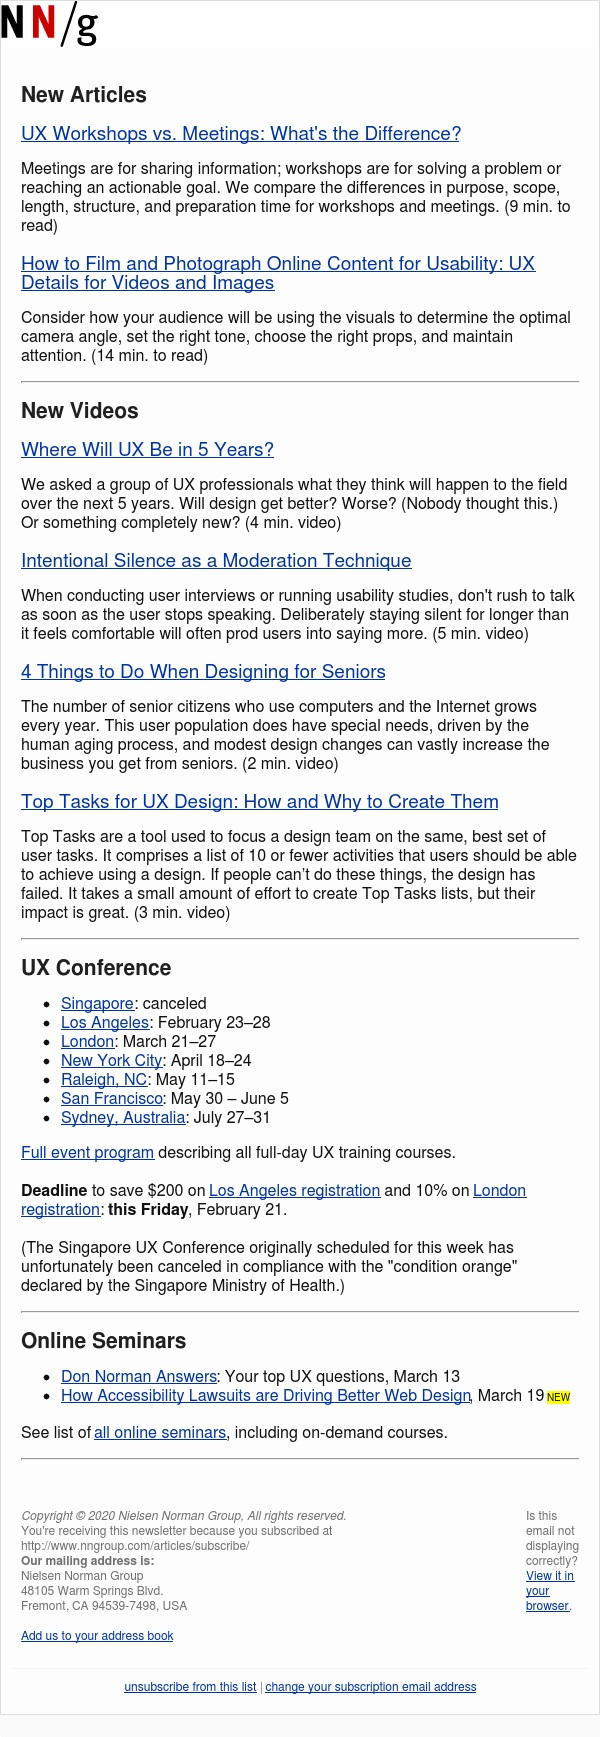 UX Workshops vs. Meetings | Film and Photograph Online Content | UX in 5 Years | Intentional Silence | Design for Seniors | Top Tasks